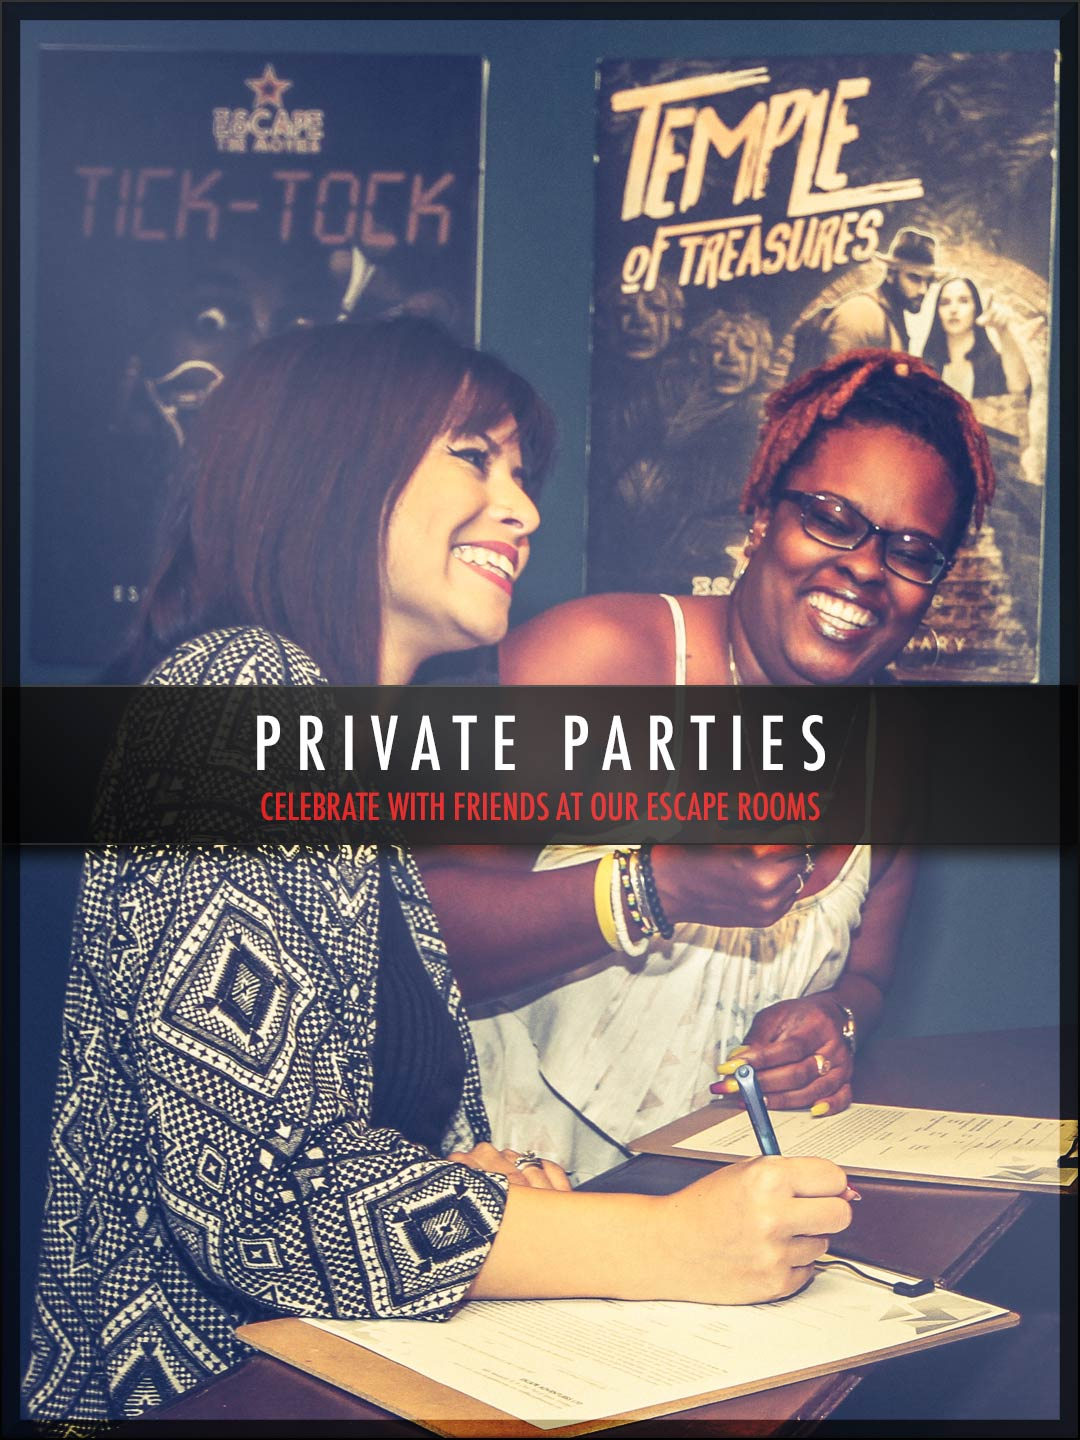 Provate Parties